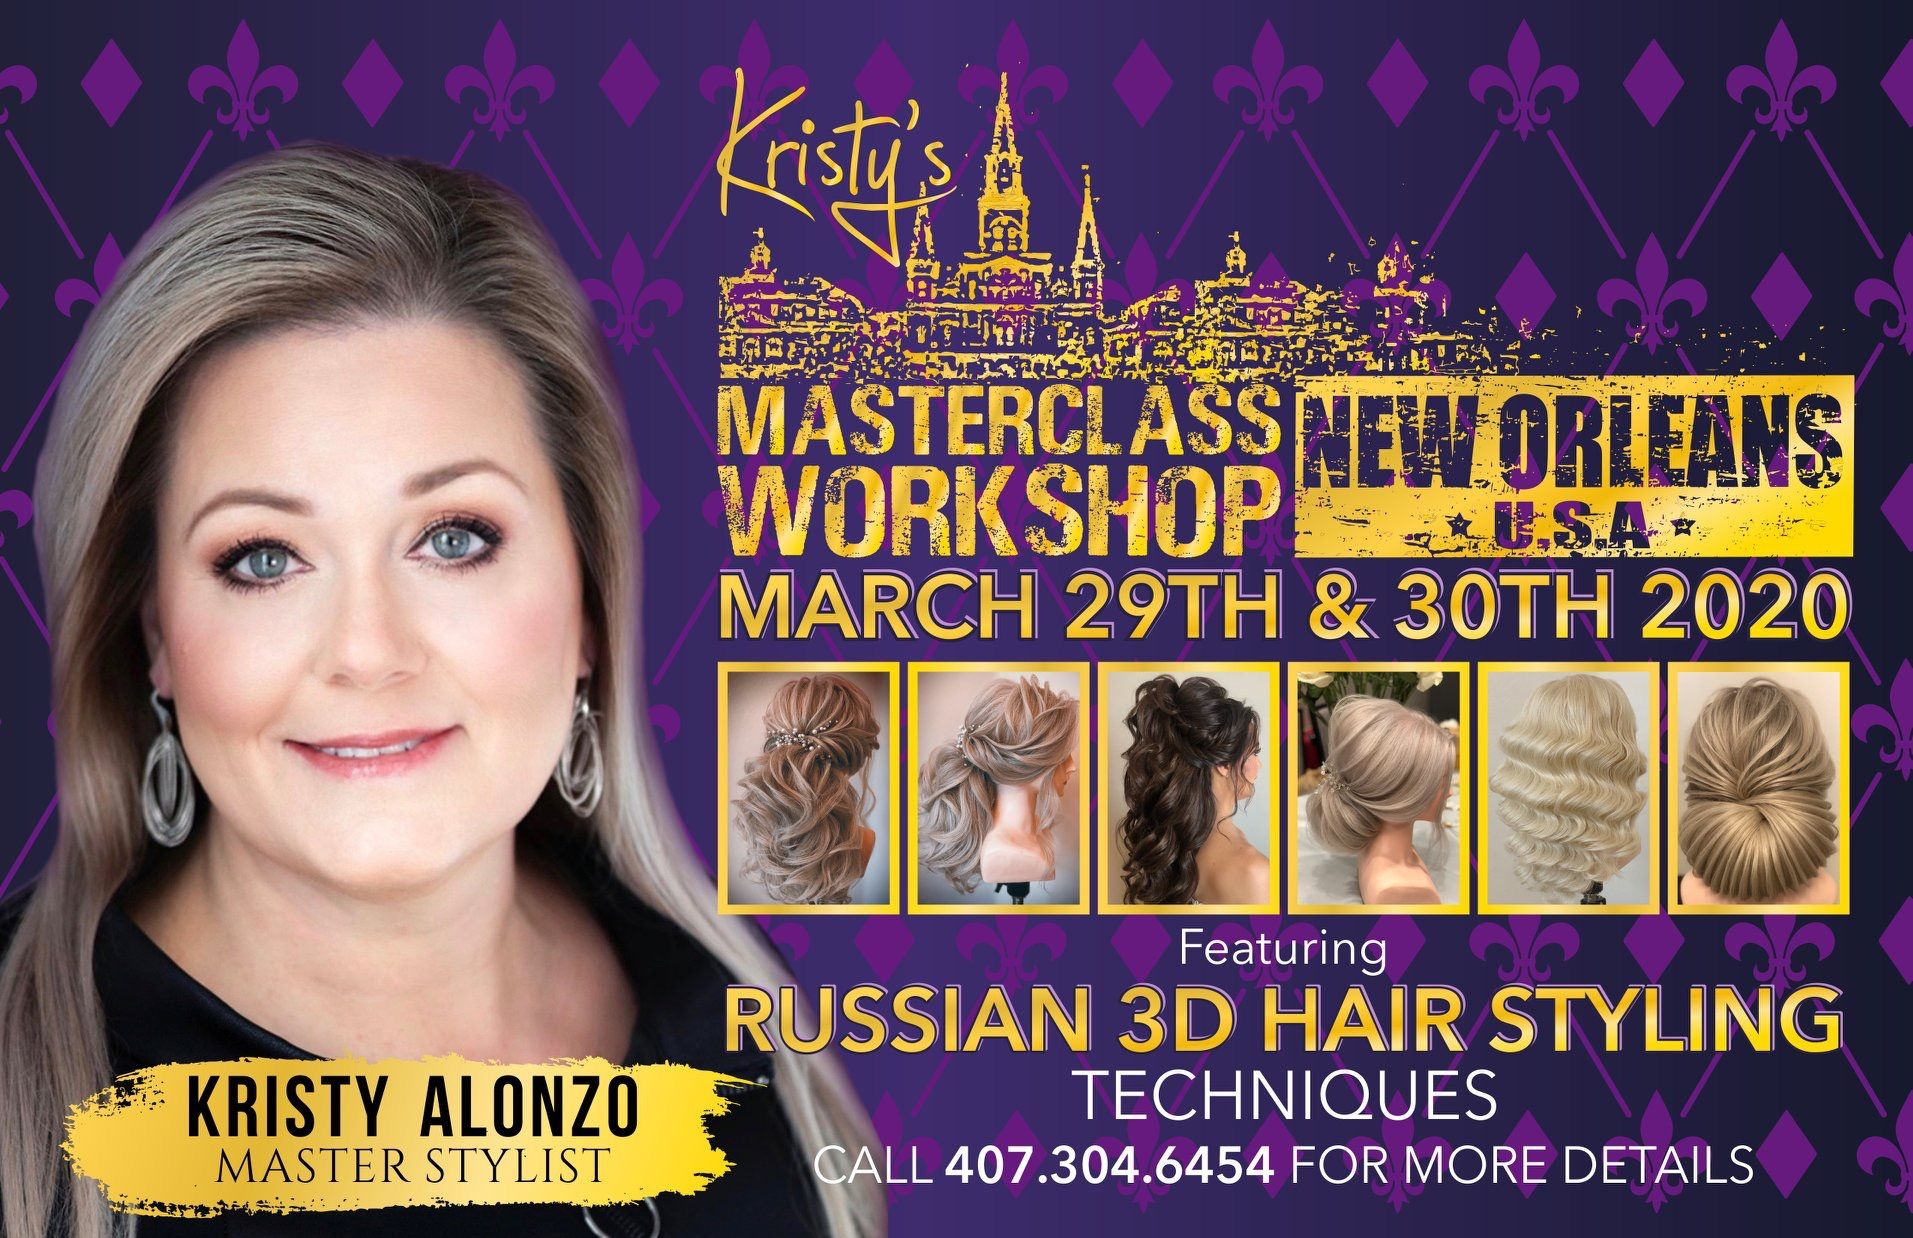 3d Russian Hairstyling Class In 2020 Master Class Russian Hairstyles Hair Styles